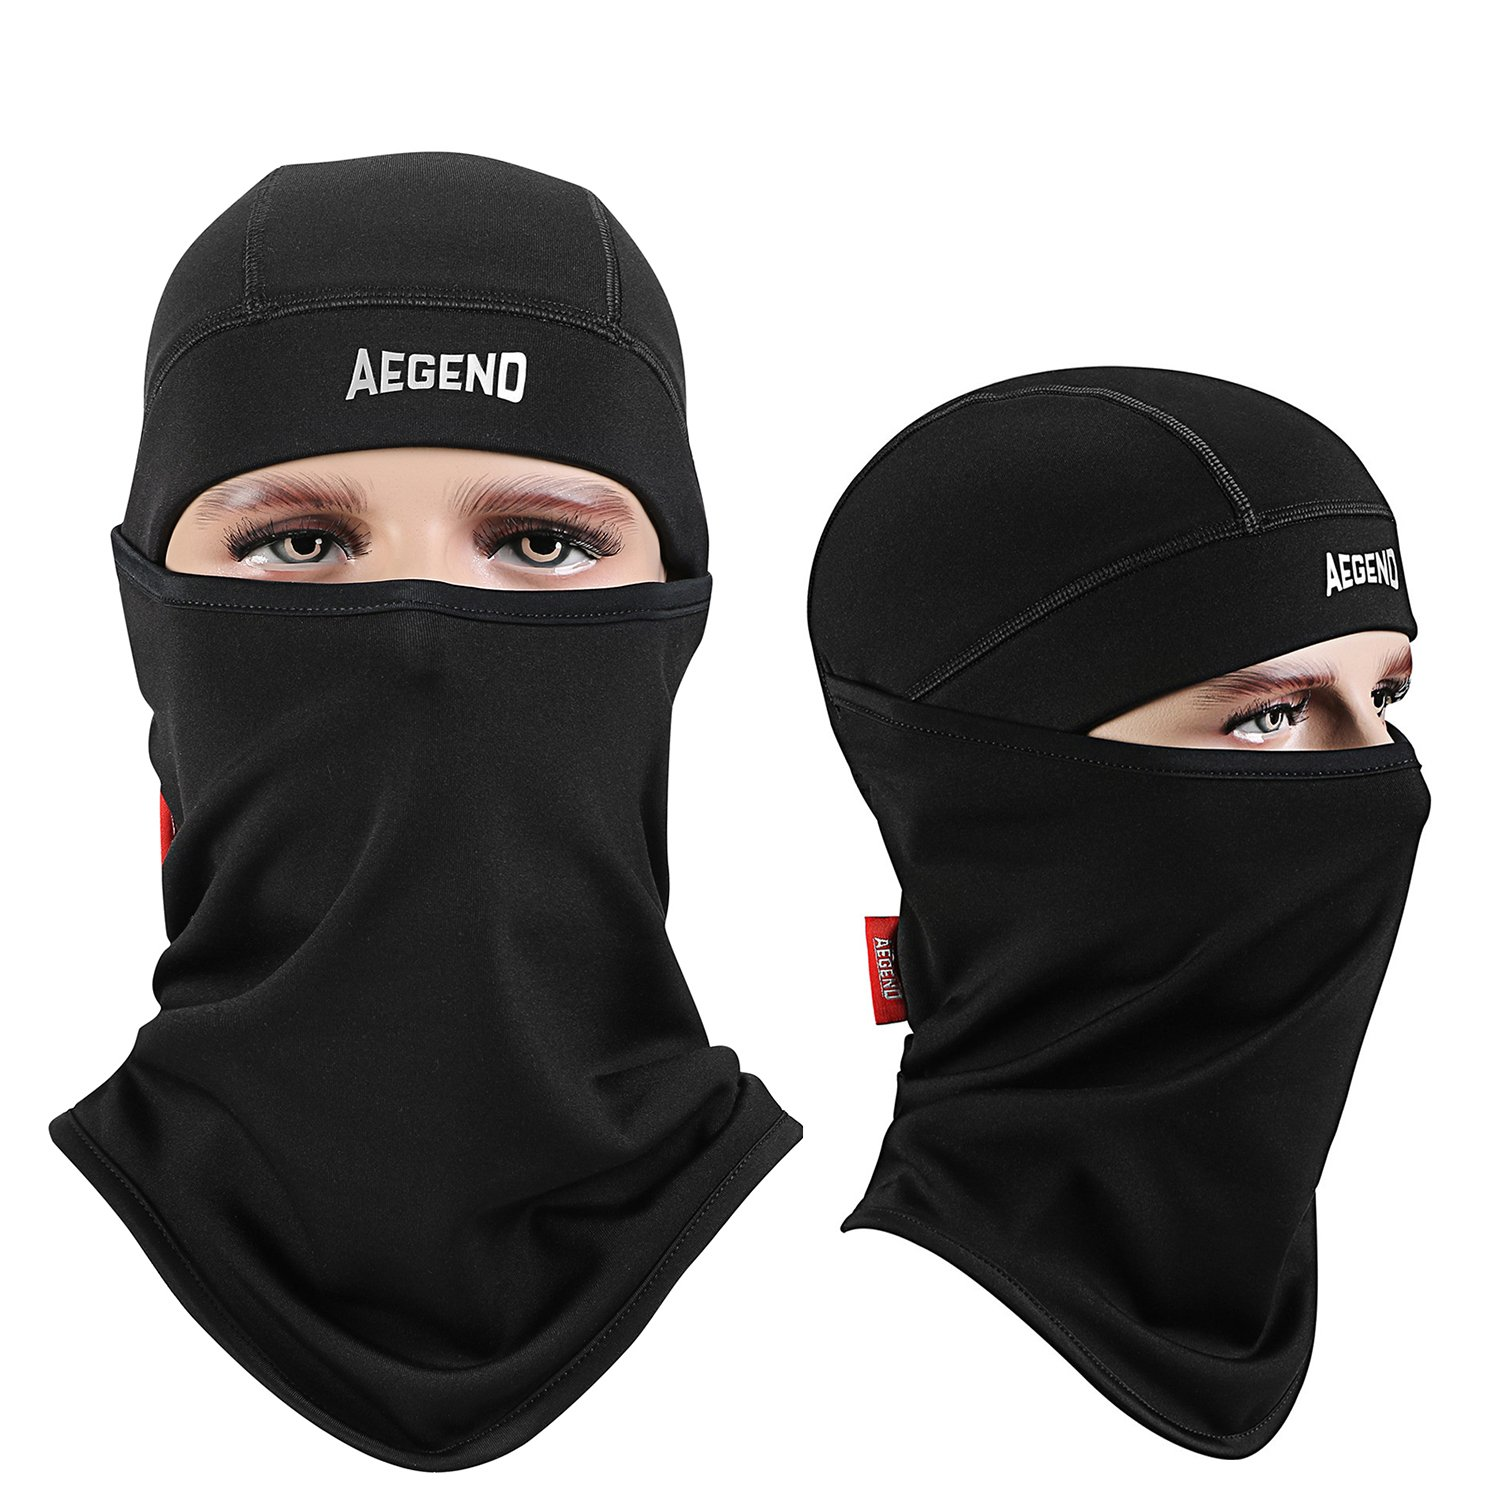 Top Amazon.com: Balaclava Aegend Windproof Ski Face Mask Winter  KB57